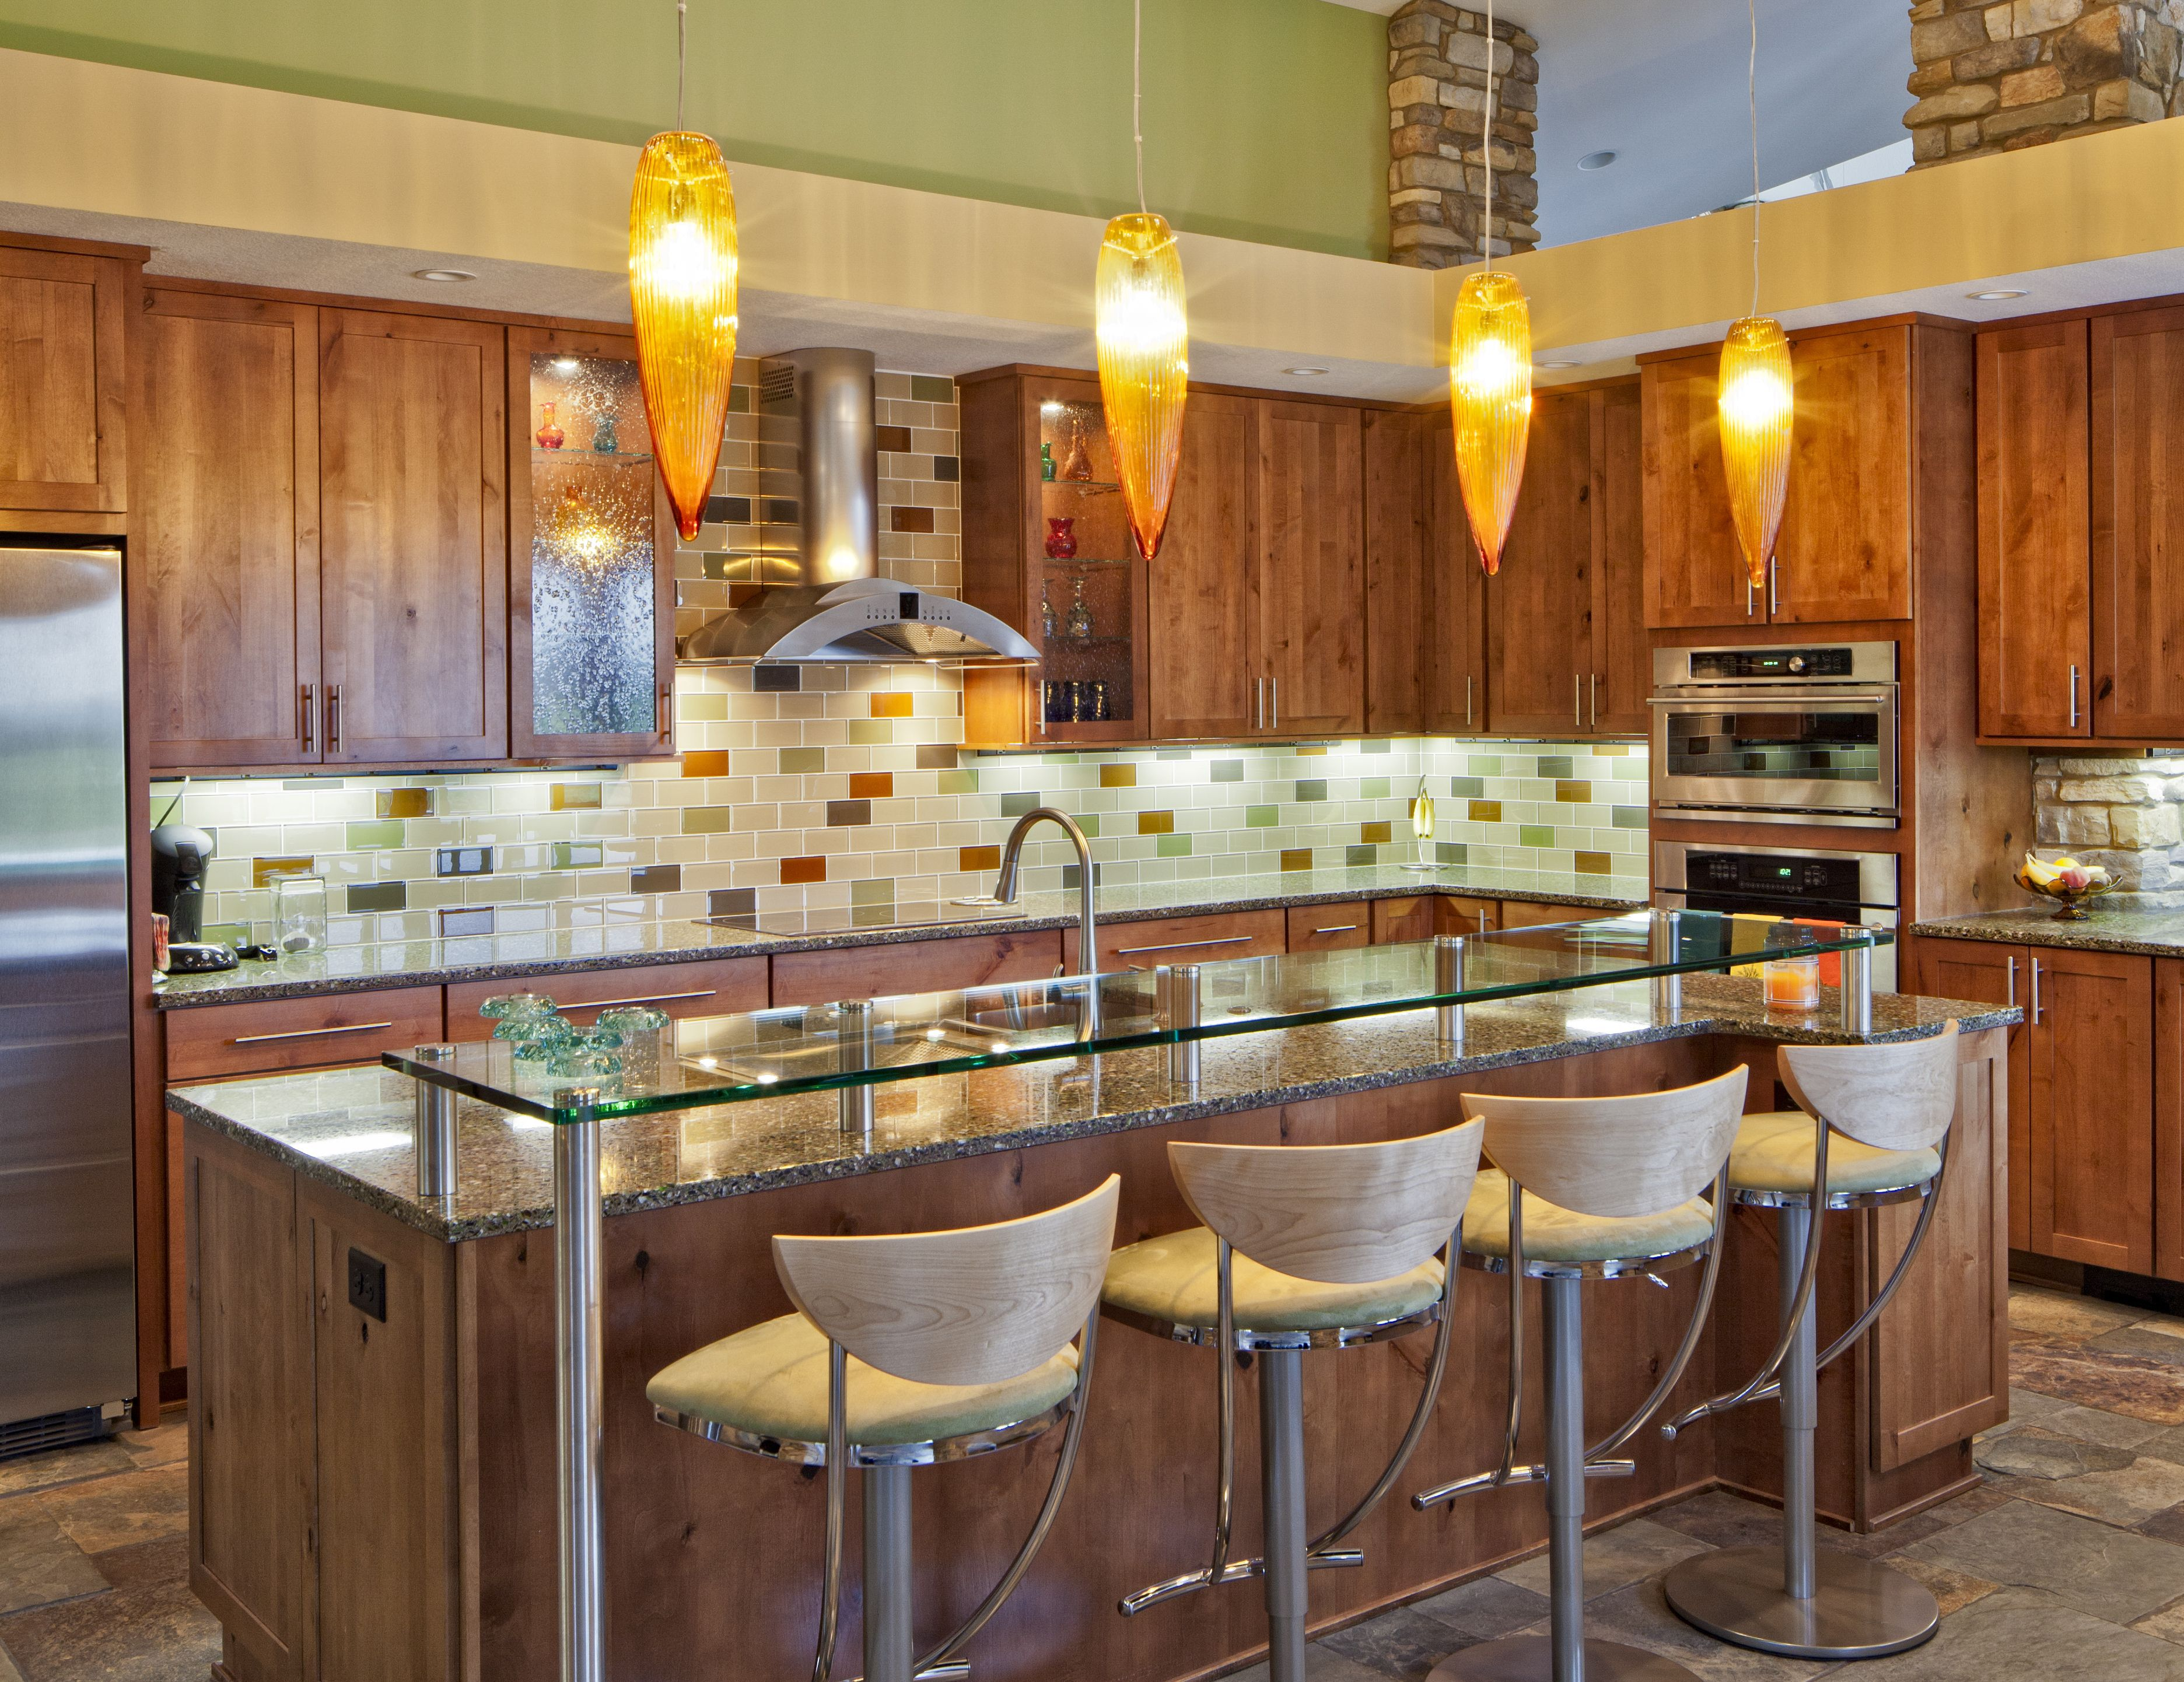 How subway tile can effectively work in modern rooms dailygadgetfo Choice Image